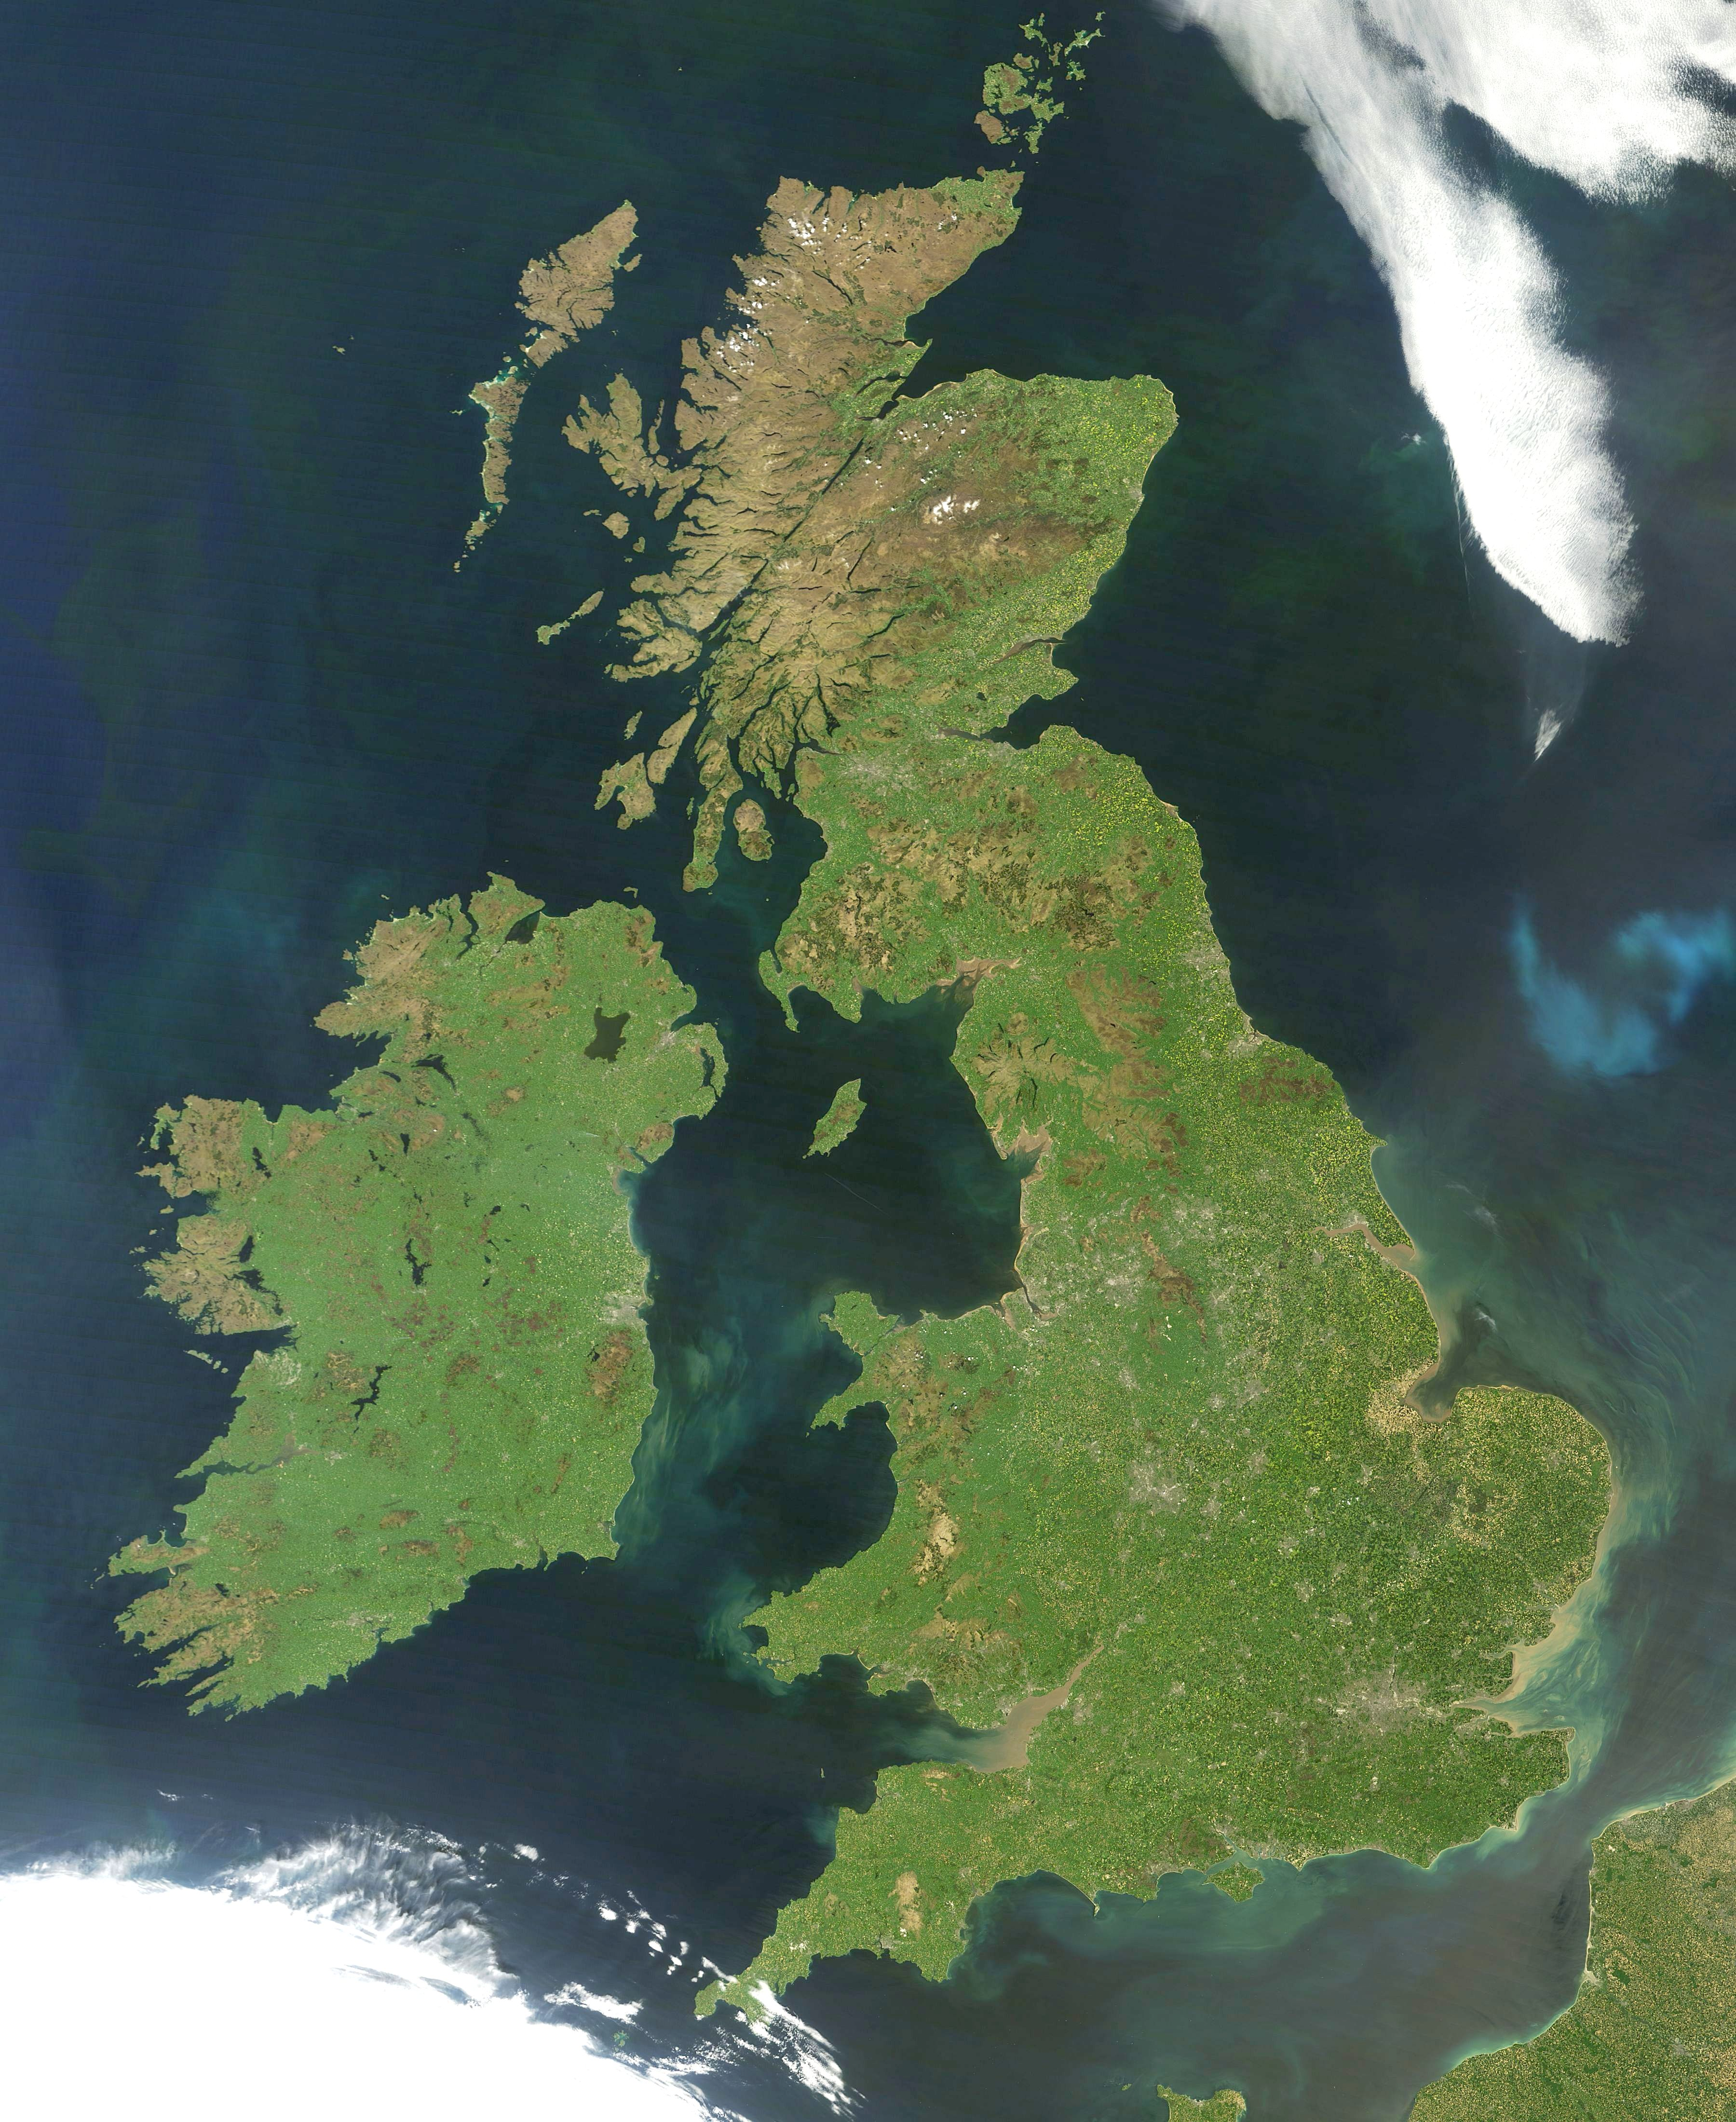 And British Isles Britain Between Uk Great Difference